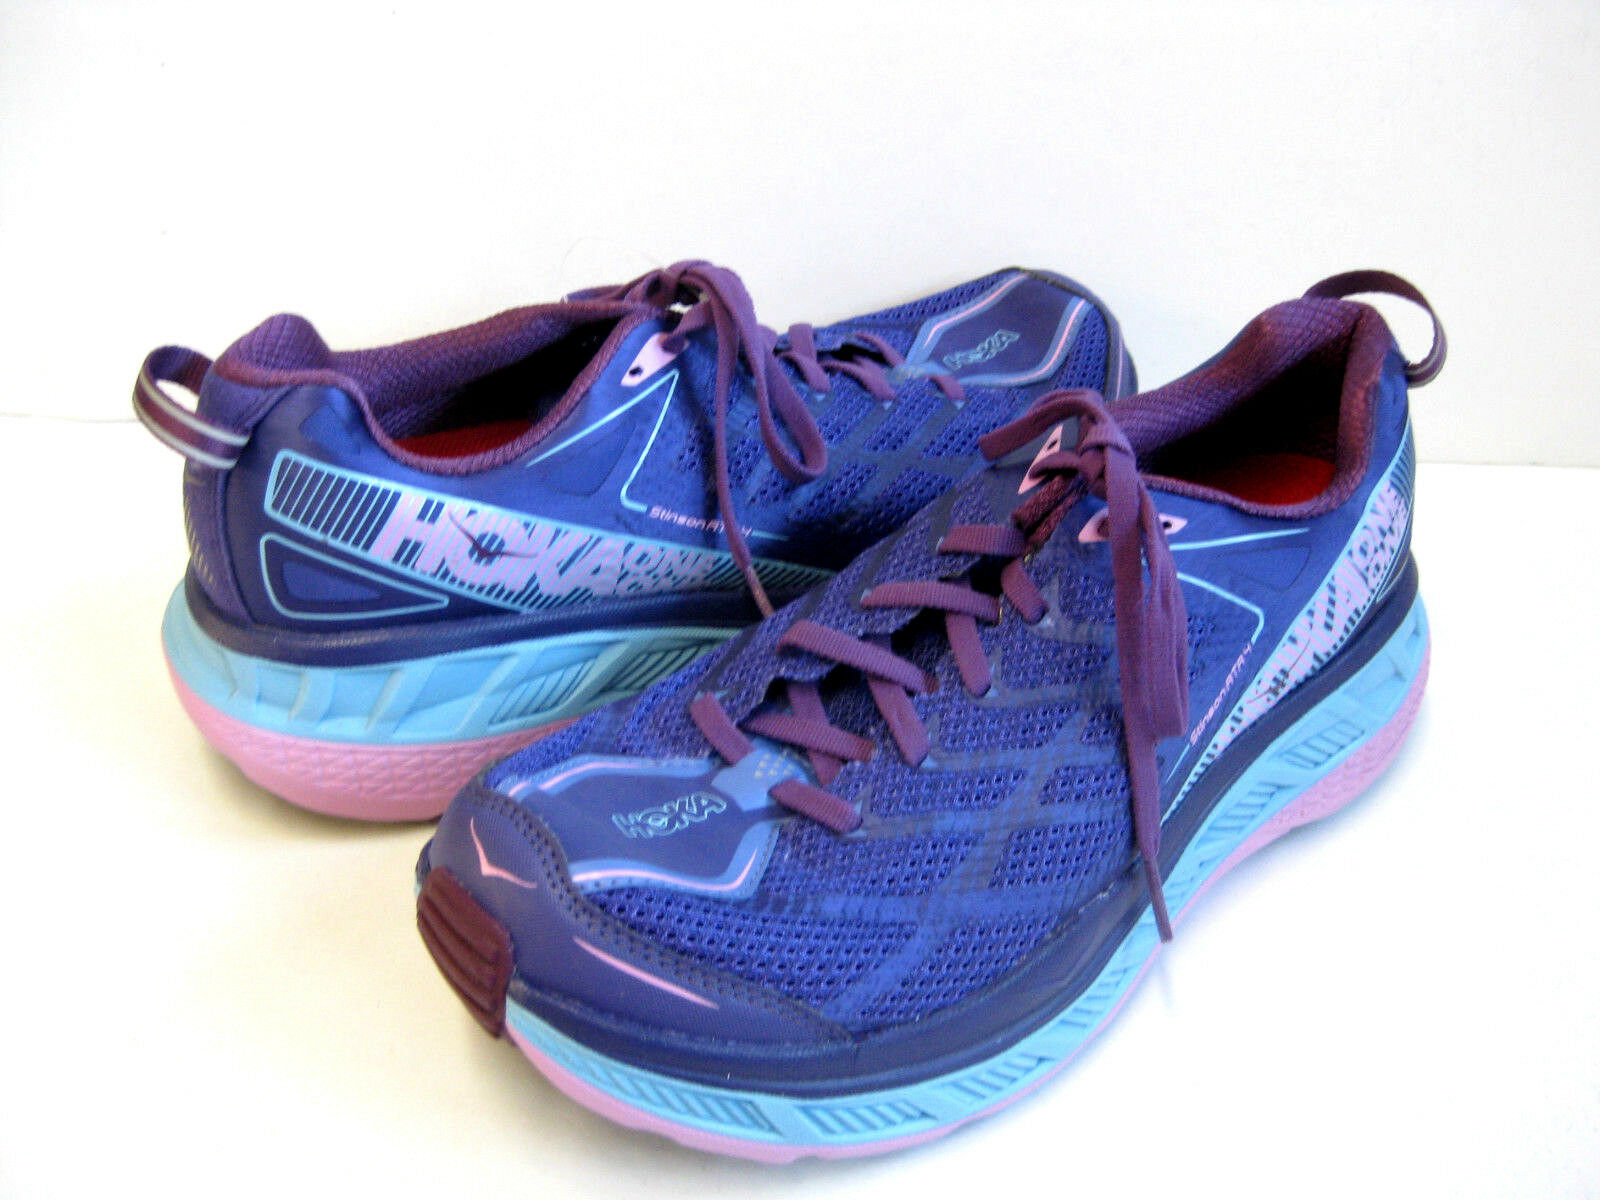 HOKA ONE ONE STINSON ATR 4 WOMEN SPORT SKY blueE US 6    3